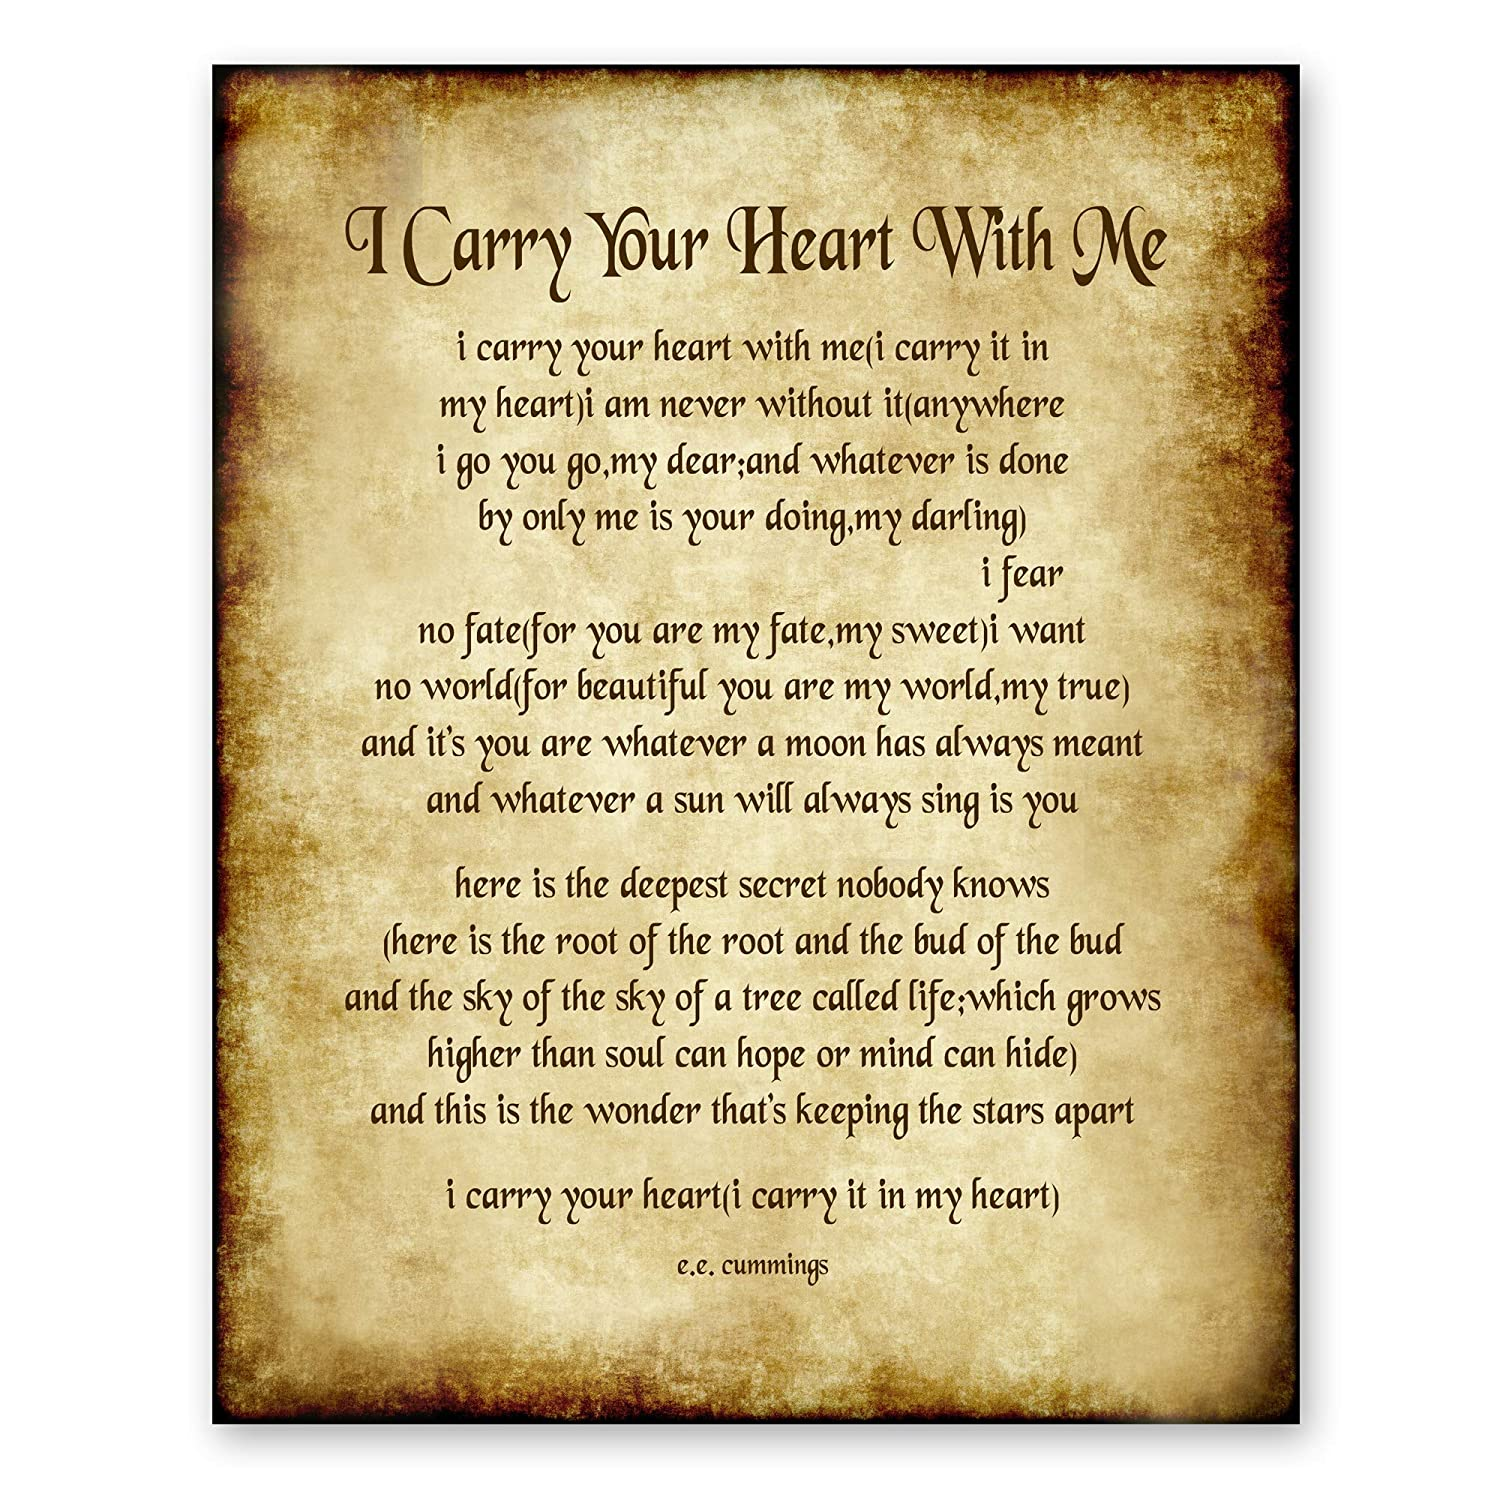 I Carry Your Heart With Me Poem By Ee Cummings Home Decor Wall Art Poetry Gift 8x10 Antique Style Print